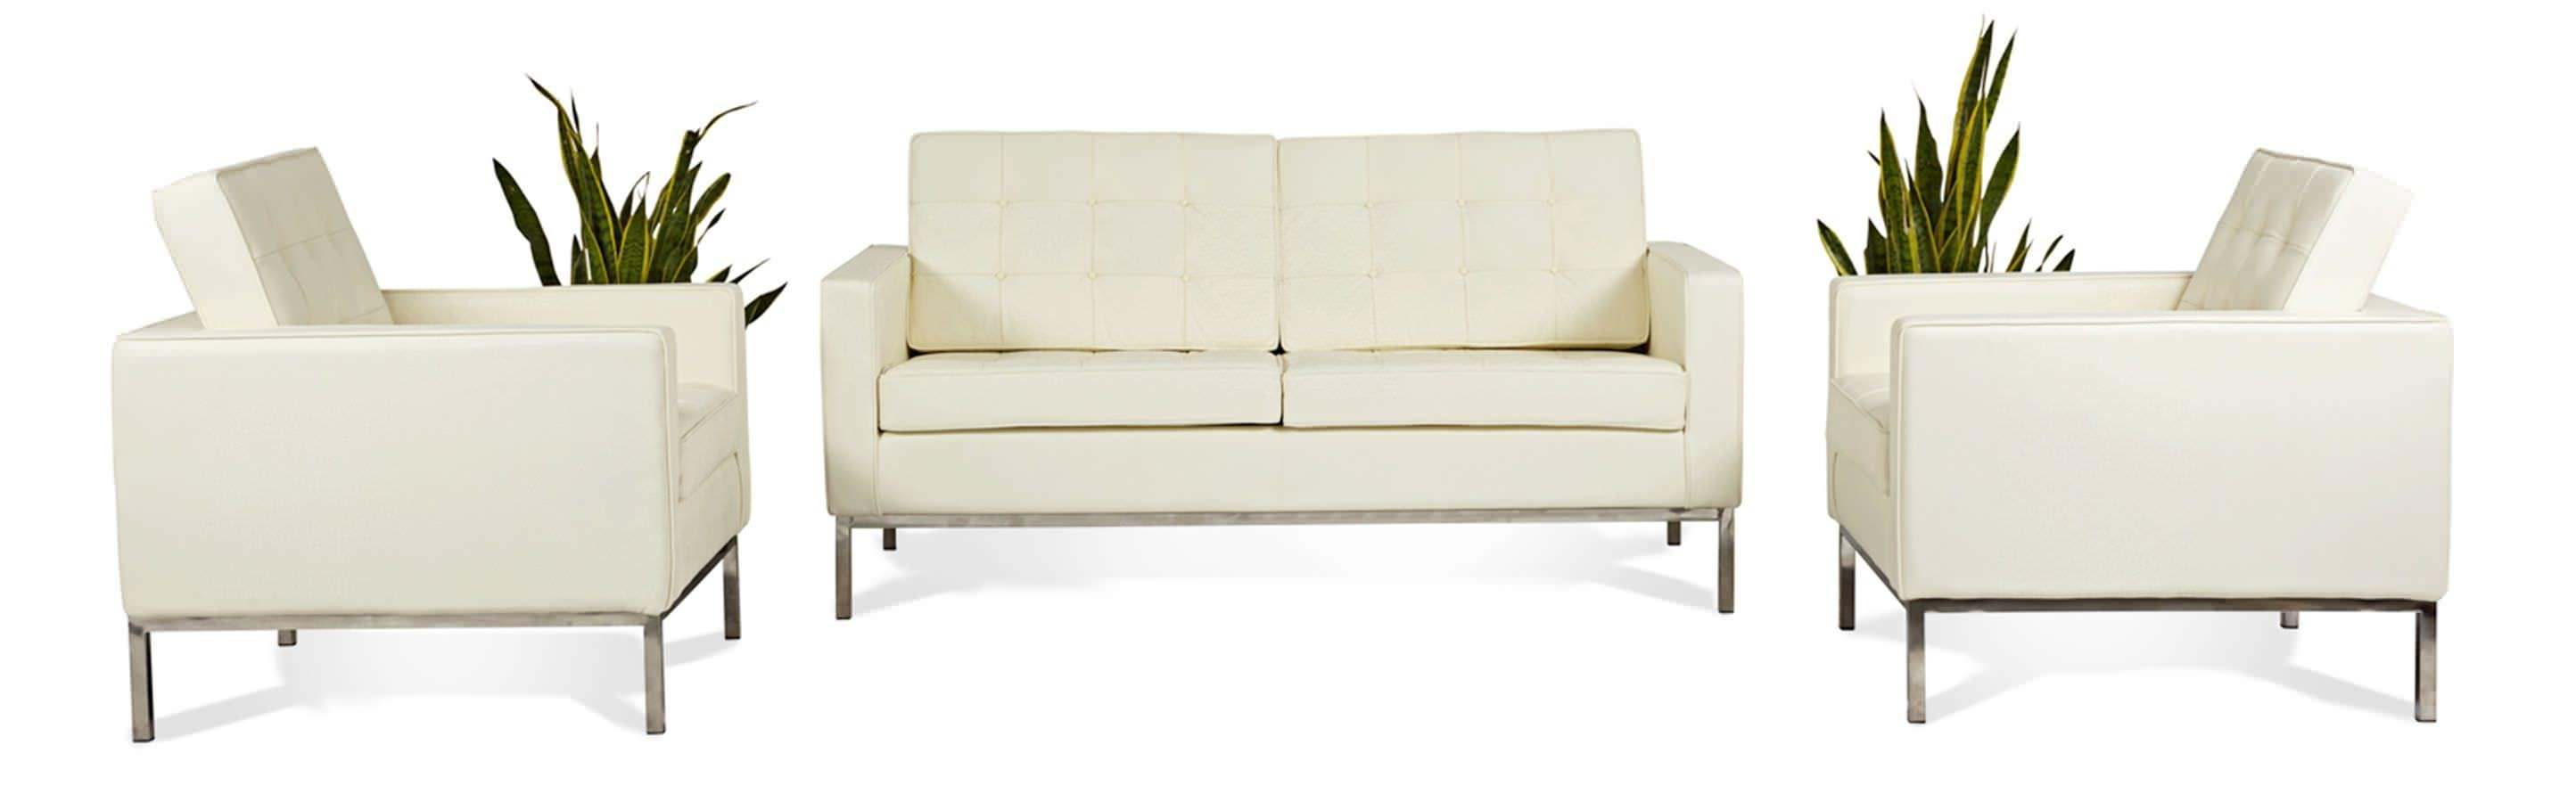 Florence Knoll Style Loveseat 2 Seater Small Sofa Mid Century Modern With Regard To Florence Sofas And Loveseats (View 5 of 20)